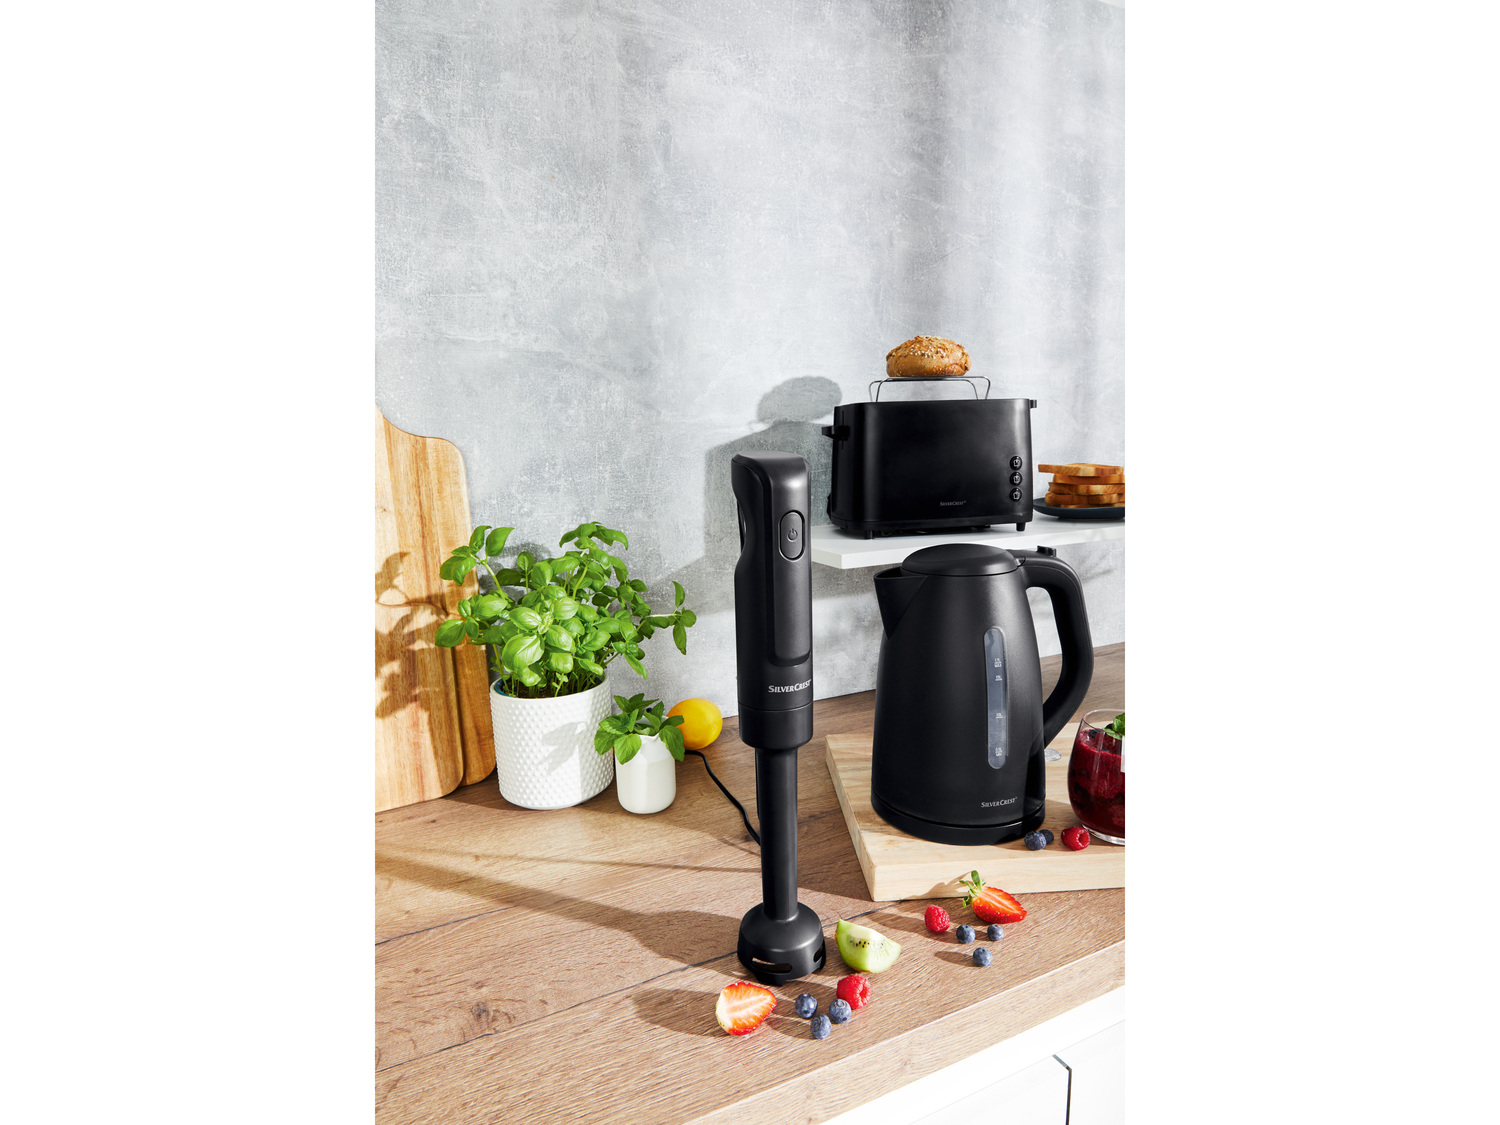 Blender ręczny 300 W Silverscrest Kitchen Tools, cena 39,99 PLN  - z nasadką do ...